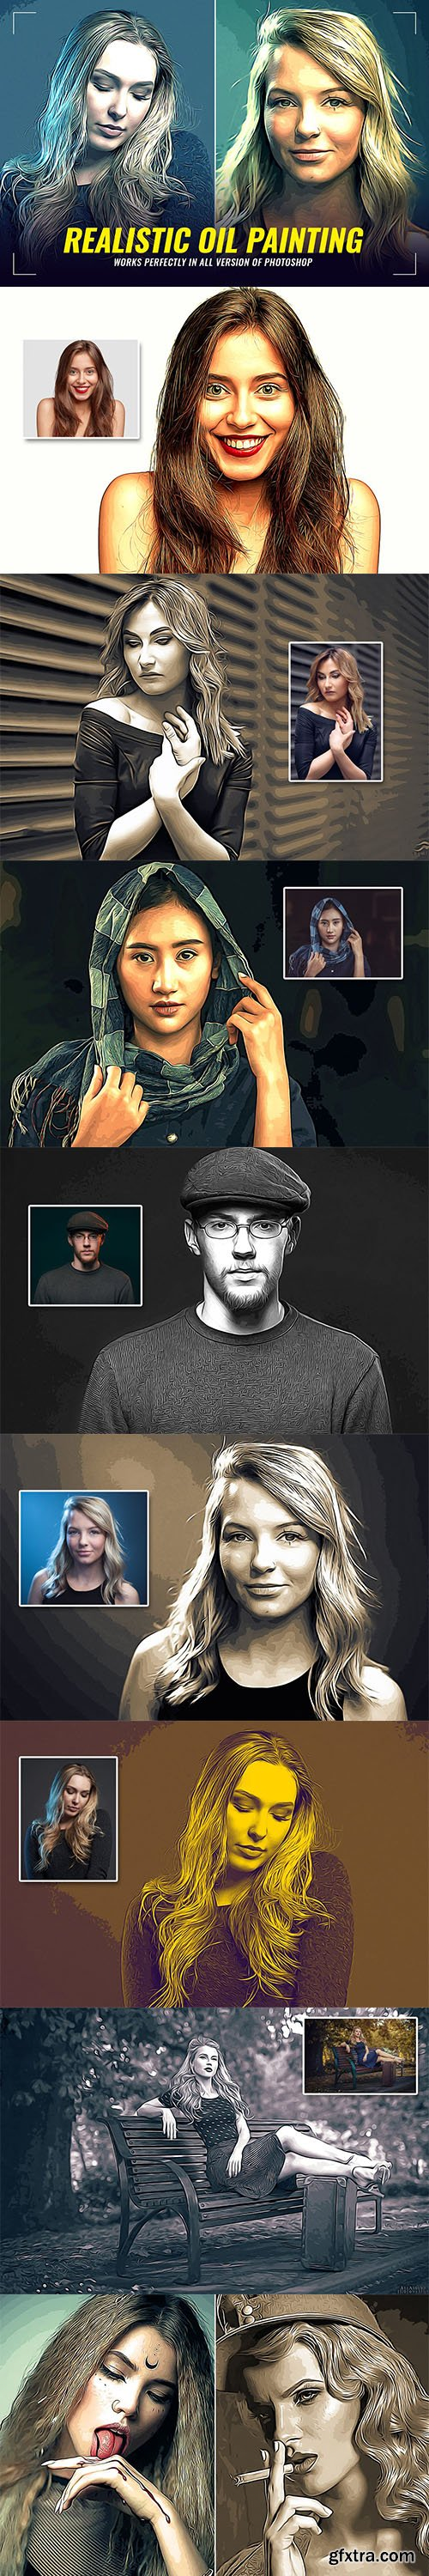 CreativeMarket - Realistic Oil Painting FX 5988848